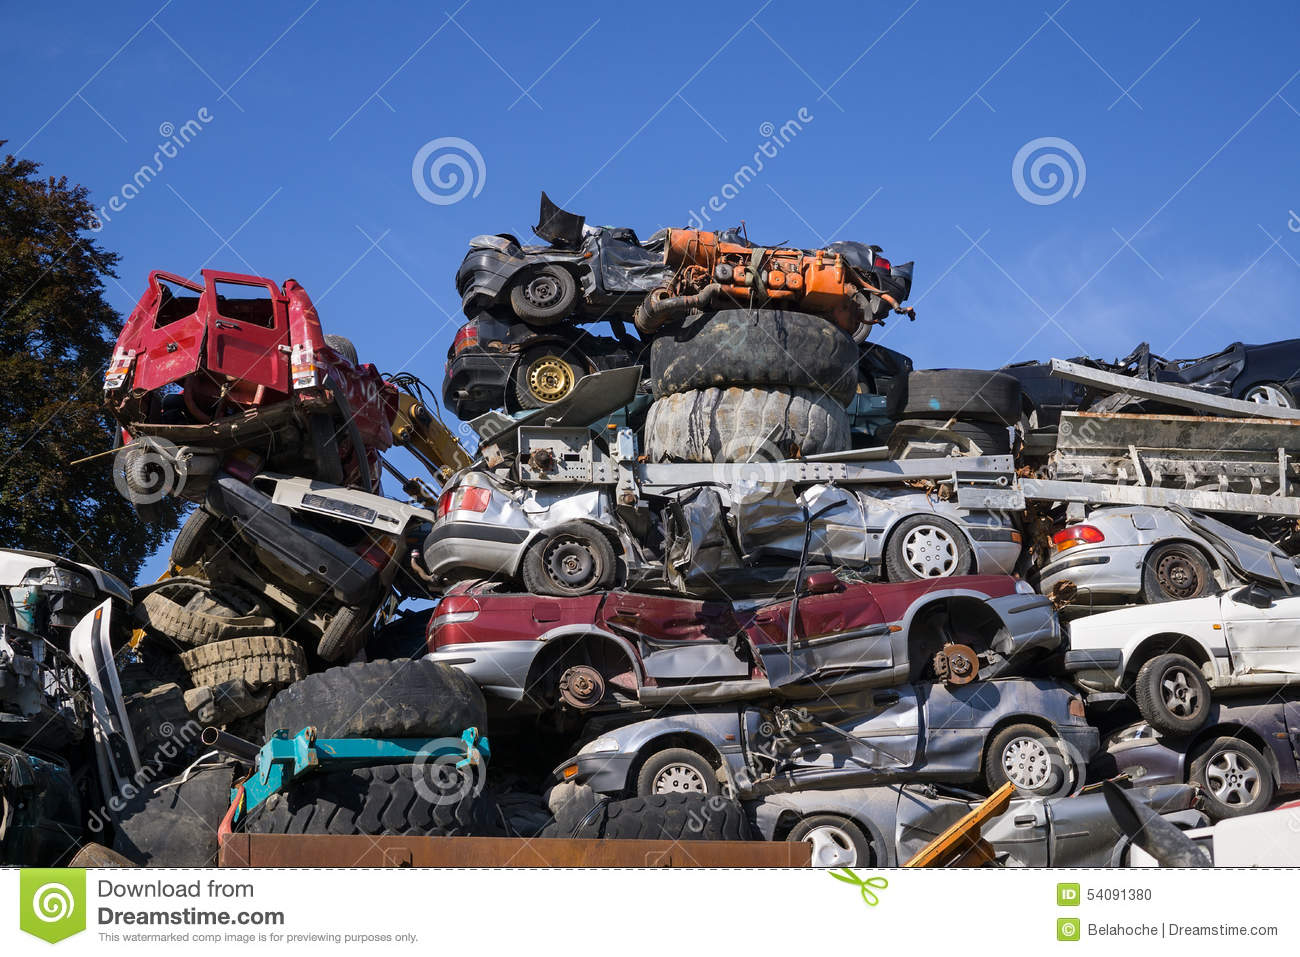 Scrap Yard For Obsolete Motor Cars. Stock Photo - Image of another ...